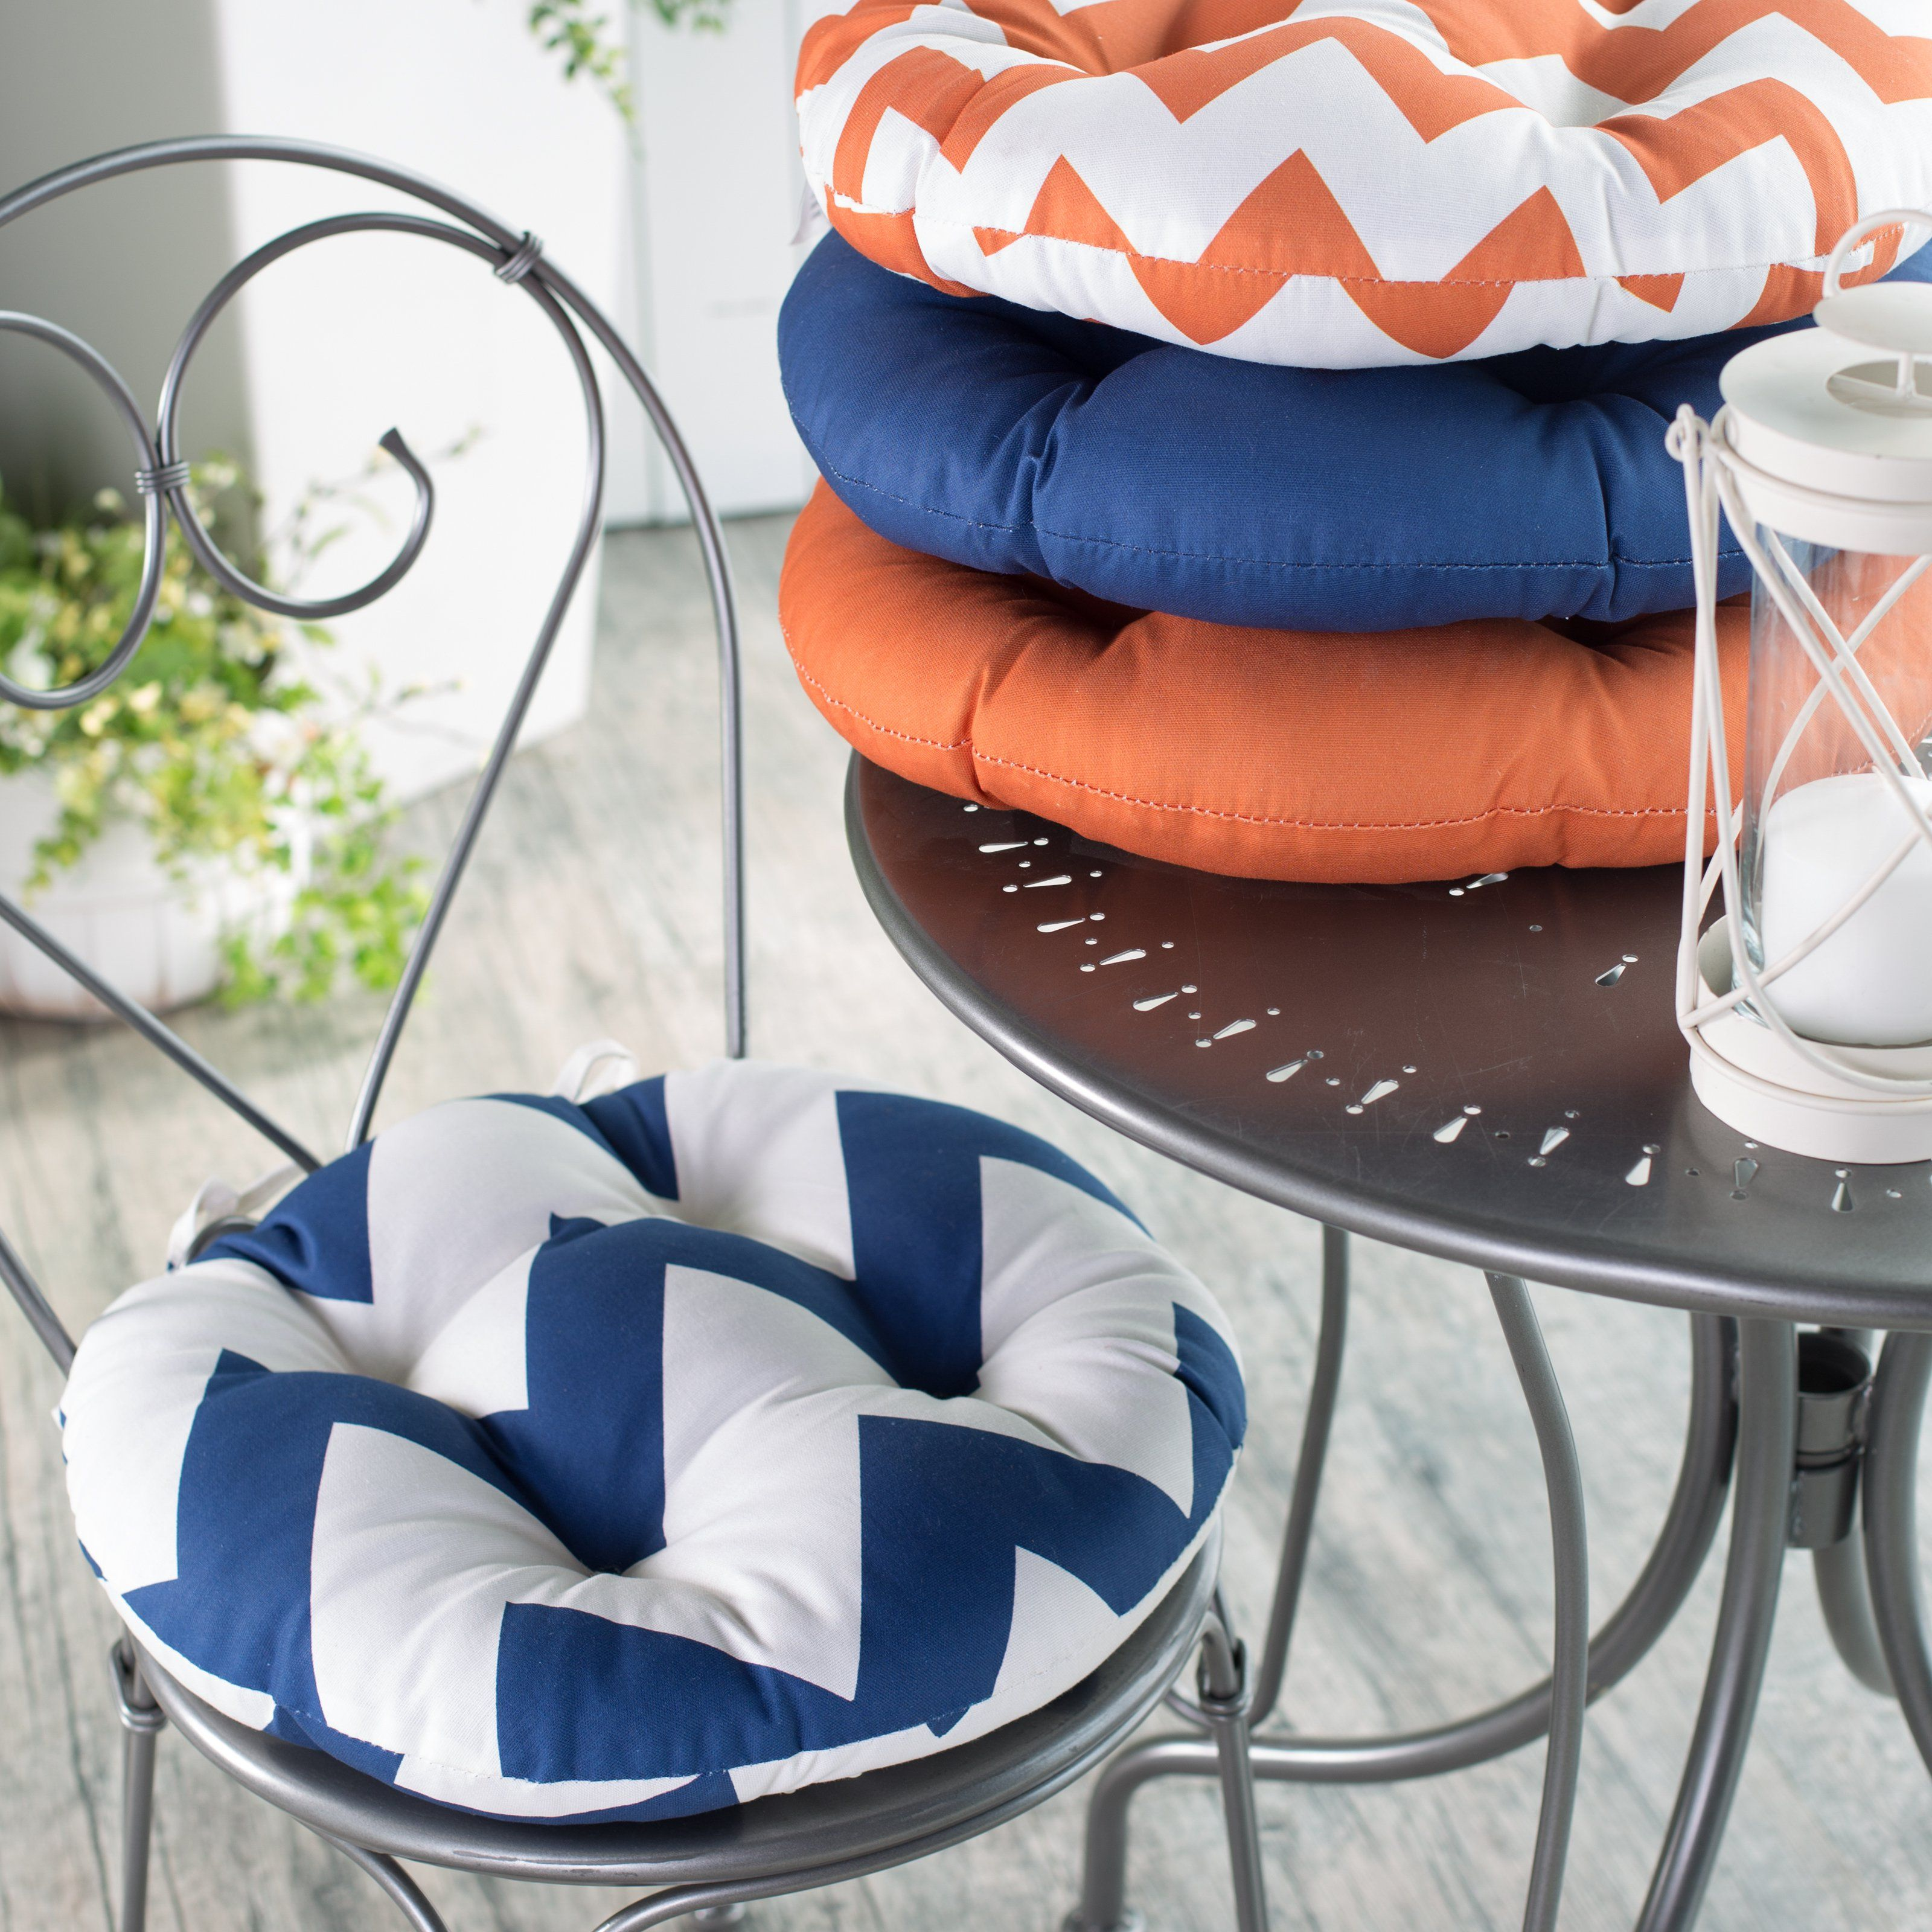 Coral Coast Valencia Bistro Outdoor Round Seat Cushion 16 in